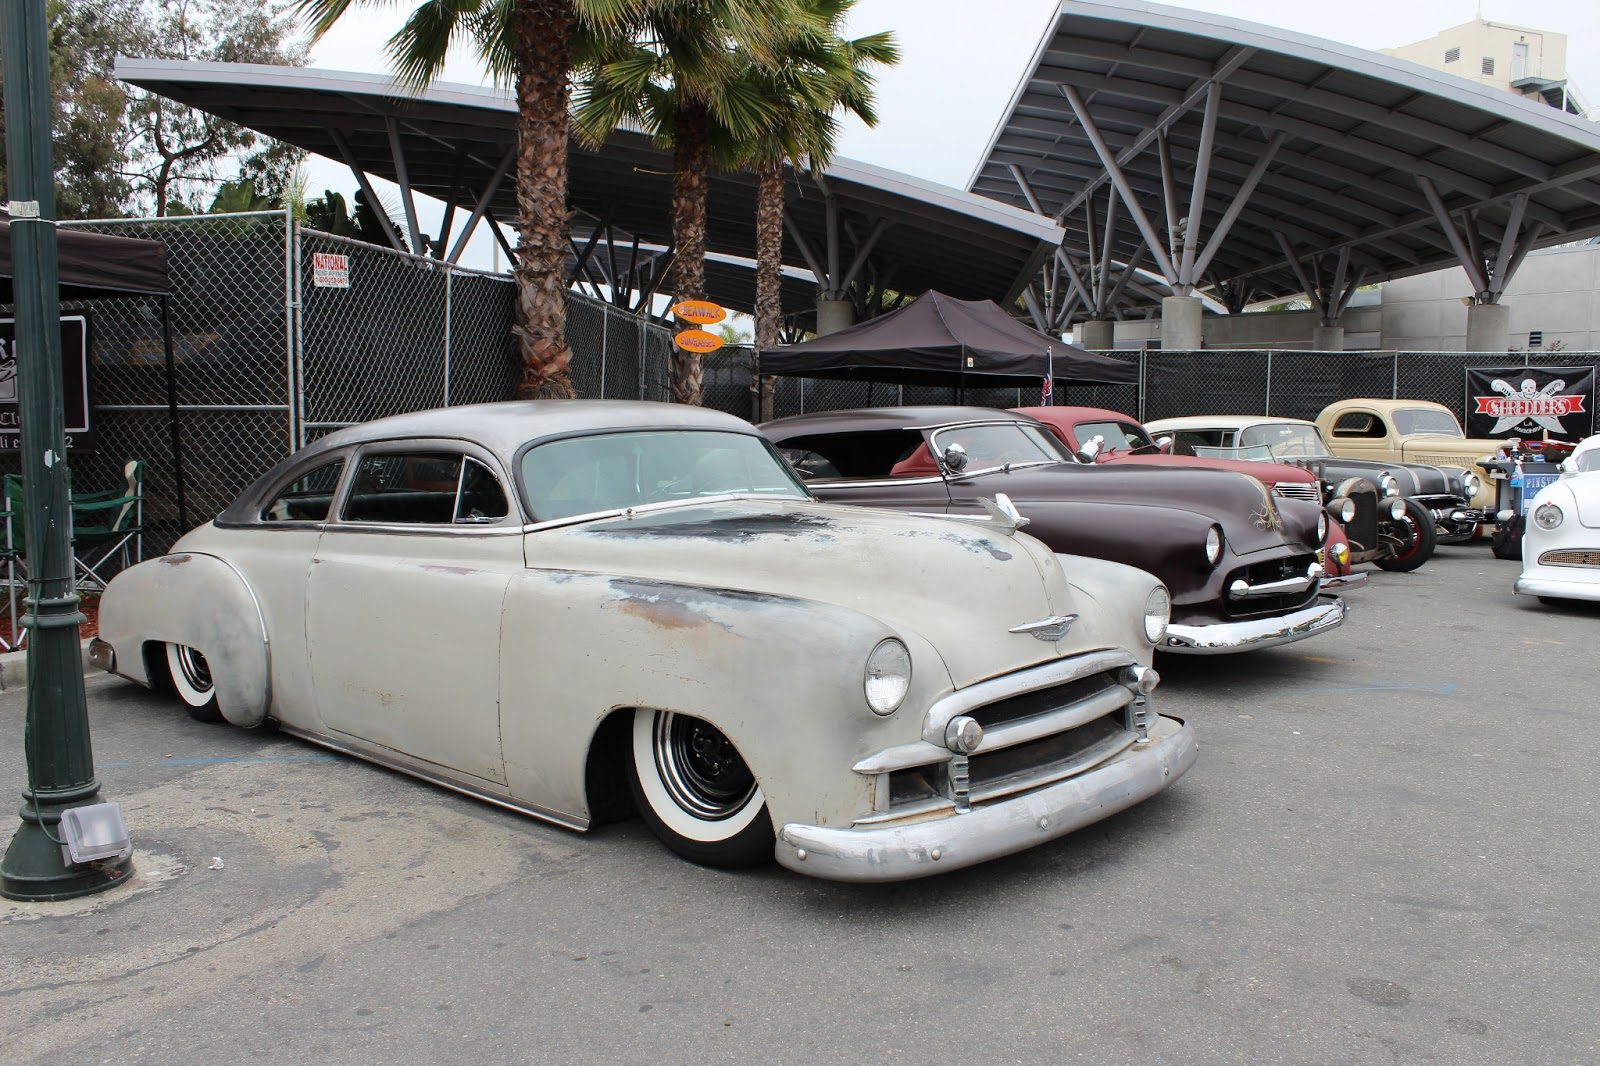 Covering Classic Cars : Ink & Iron Car Show 2013 at the Queen Mary